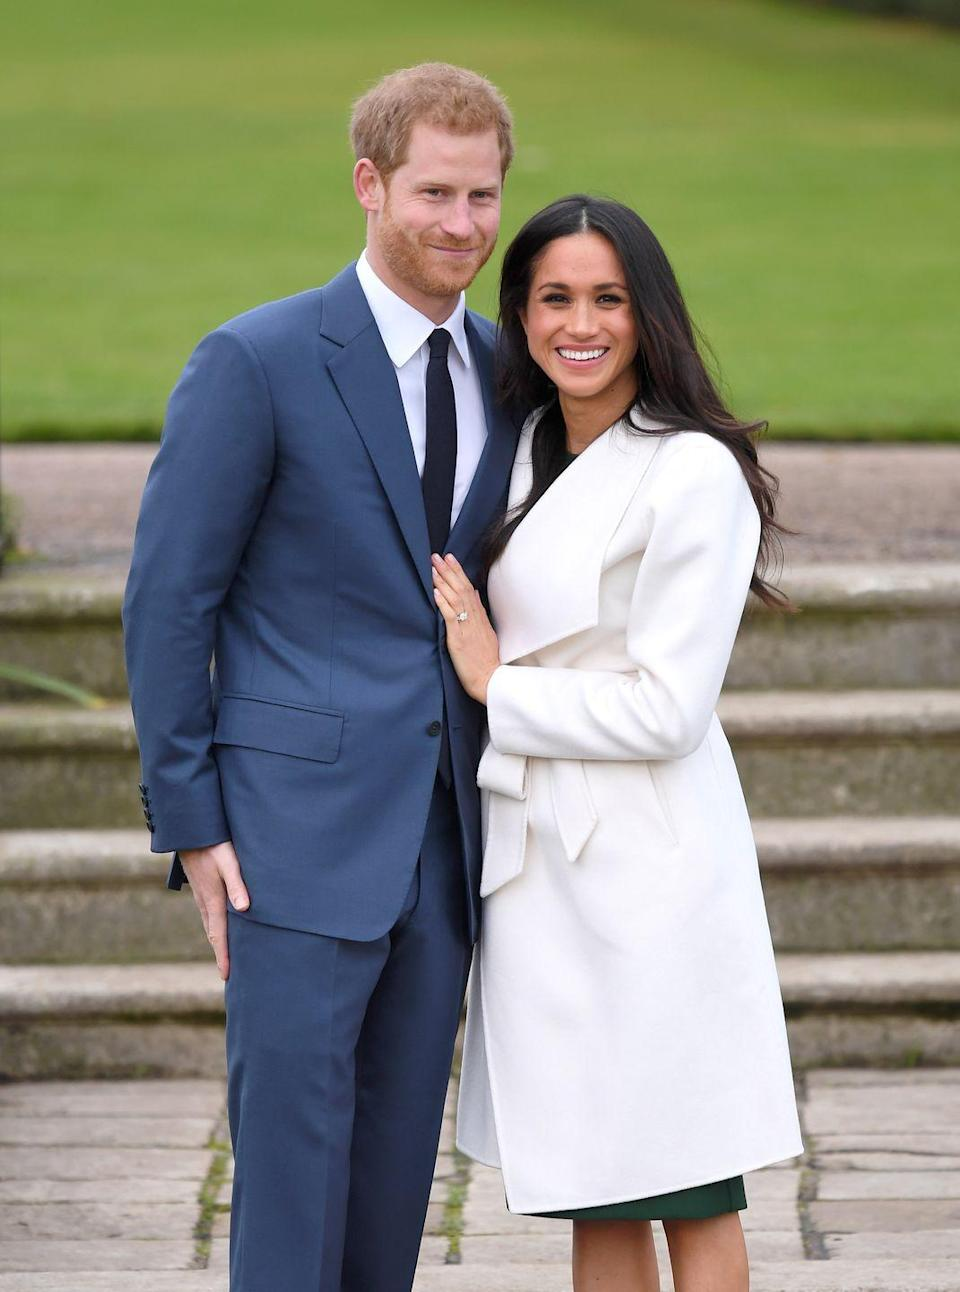 """<p>On May 19, 2018, <a href=""""https://www.prevention.com/beauty/makeup/a20755974/meghan-markle-royal-wedding-makeup-freckles/"""" rel=""""nofollow noopener"""" target=""""_blank"""" data-ylk=""""slk:Markle"""" class=""""link rapid-noclick-resp"""">Markle</a> proved that fairy tales do exist when she married Prince Harry and became the Duchess of Sussex. Fun fact: She's the first divorcée to become a member of the Royal Family.</p>"""